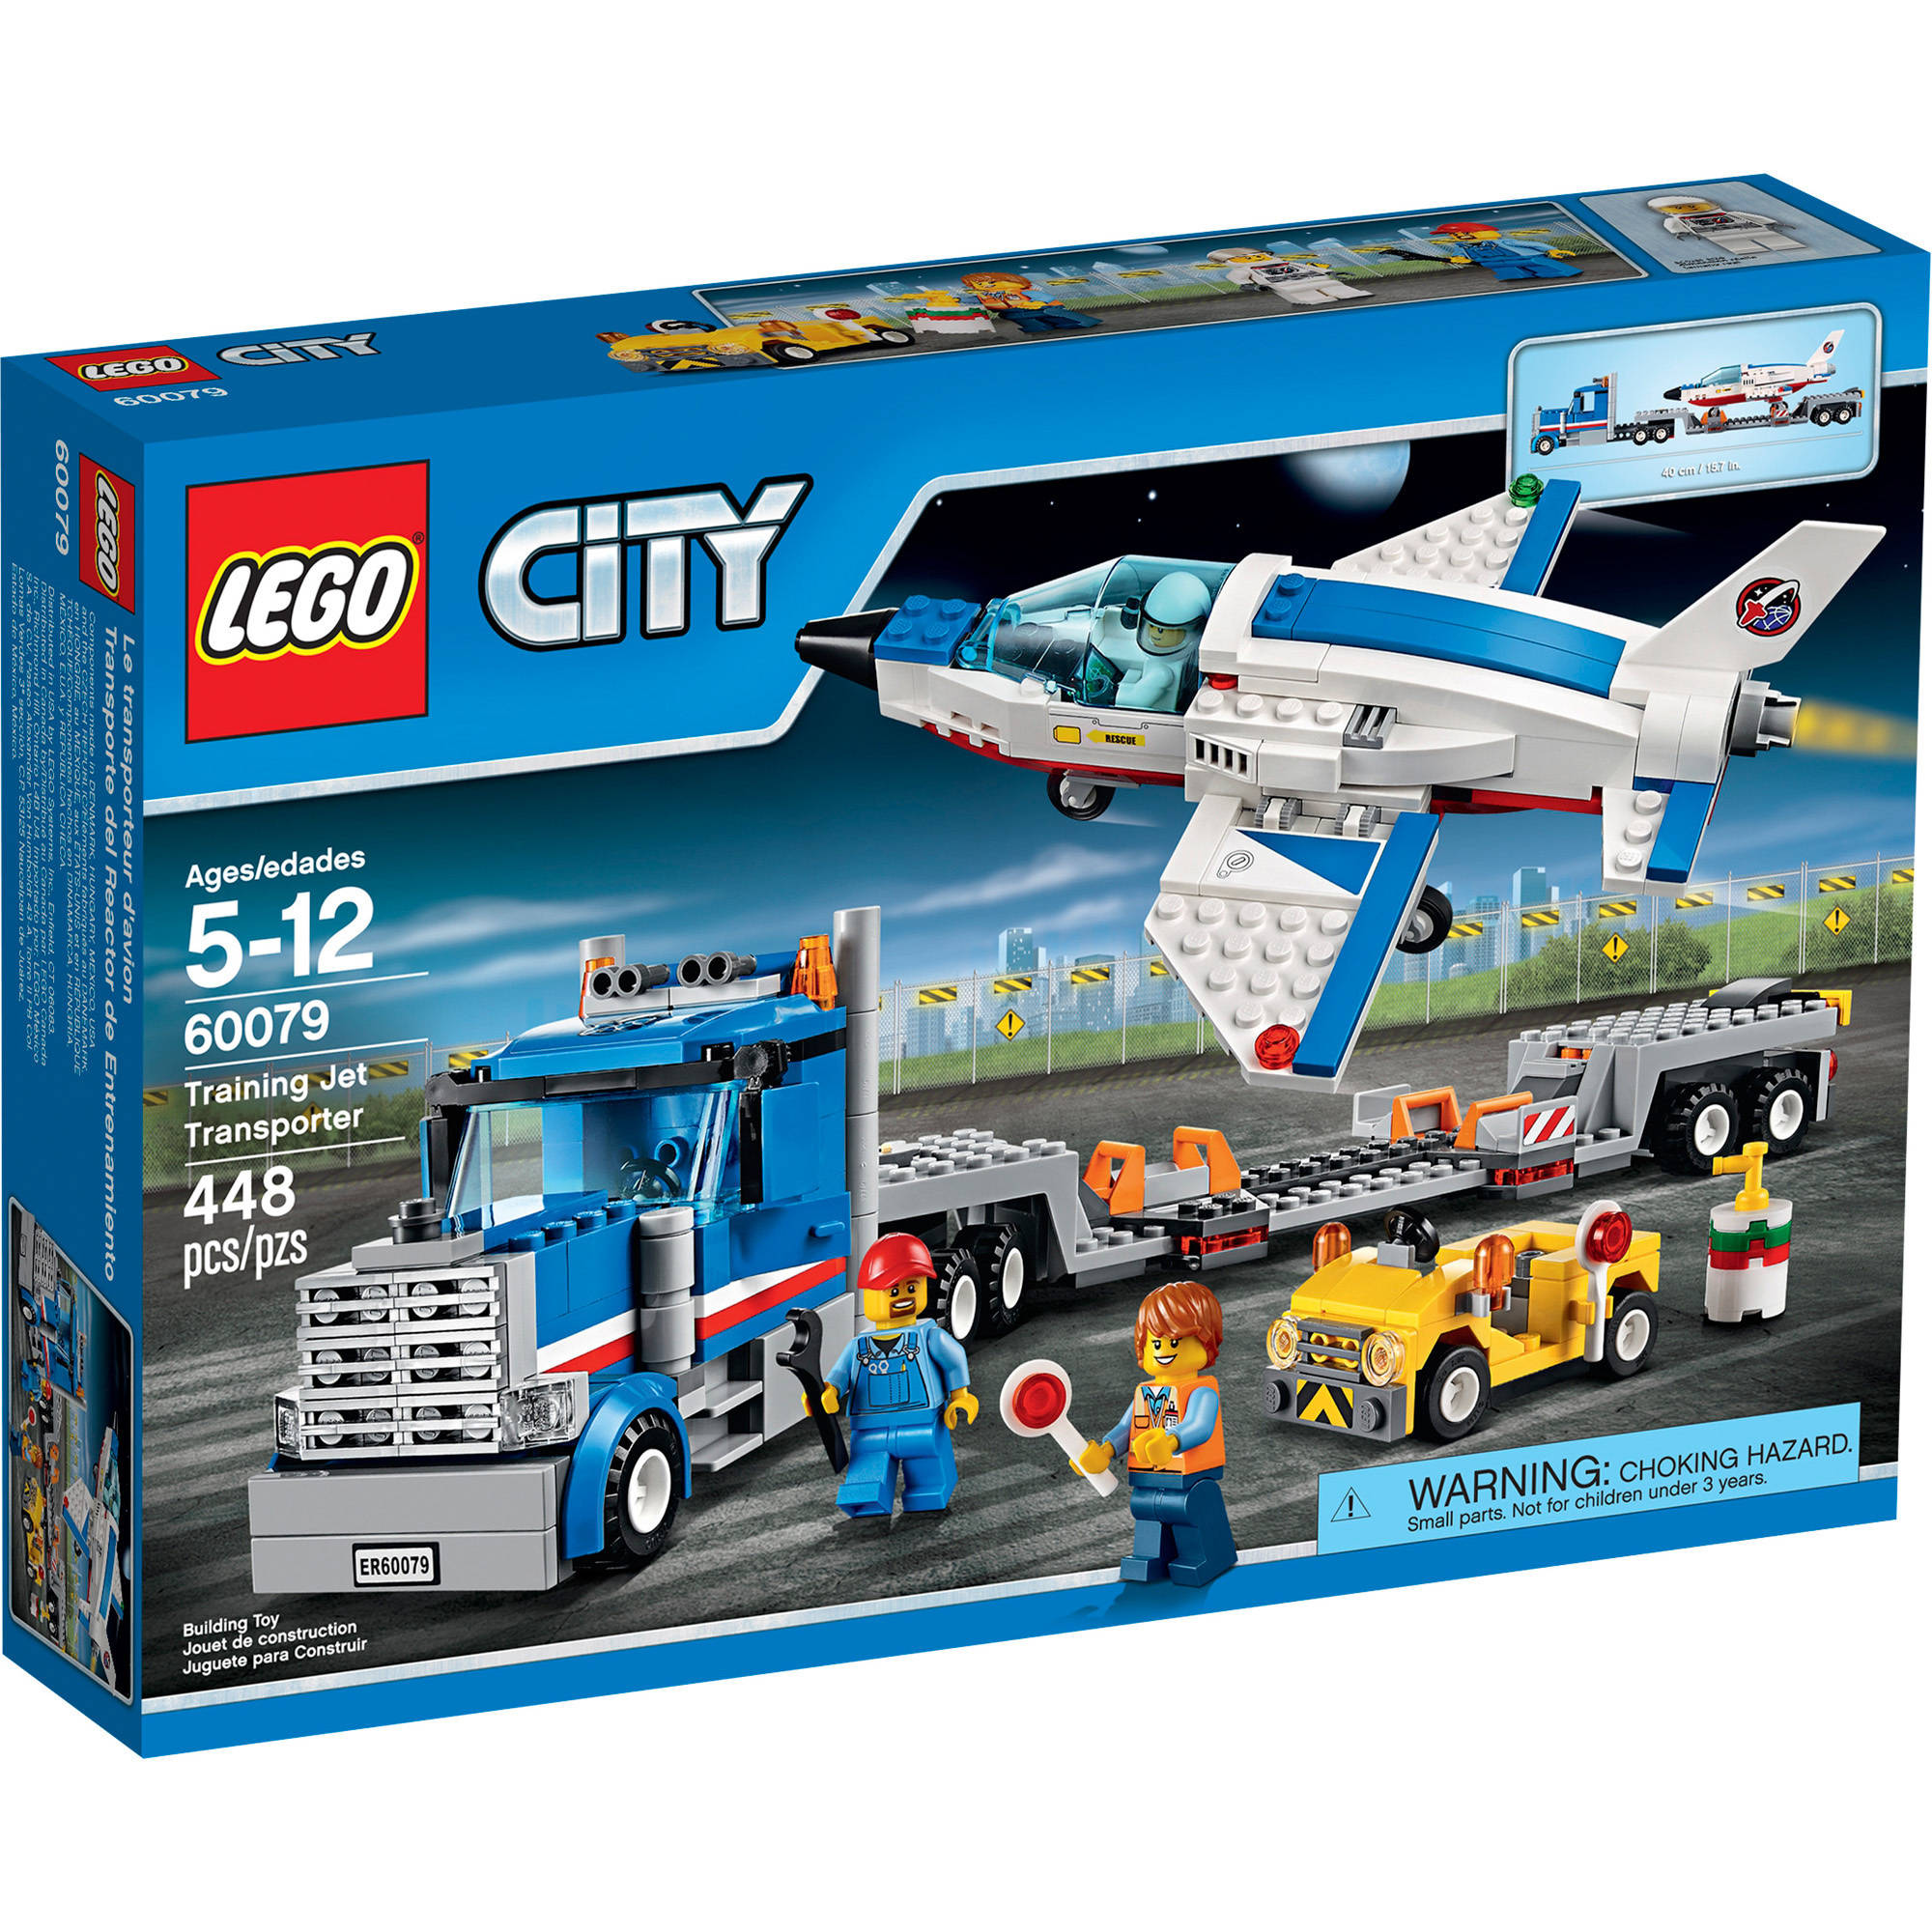 Lego City Space Port Training Jet Transporter, 60079 by LEGO Systems, Inc.